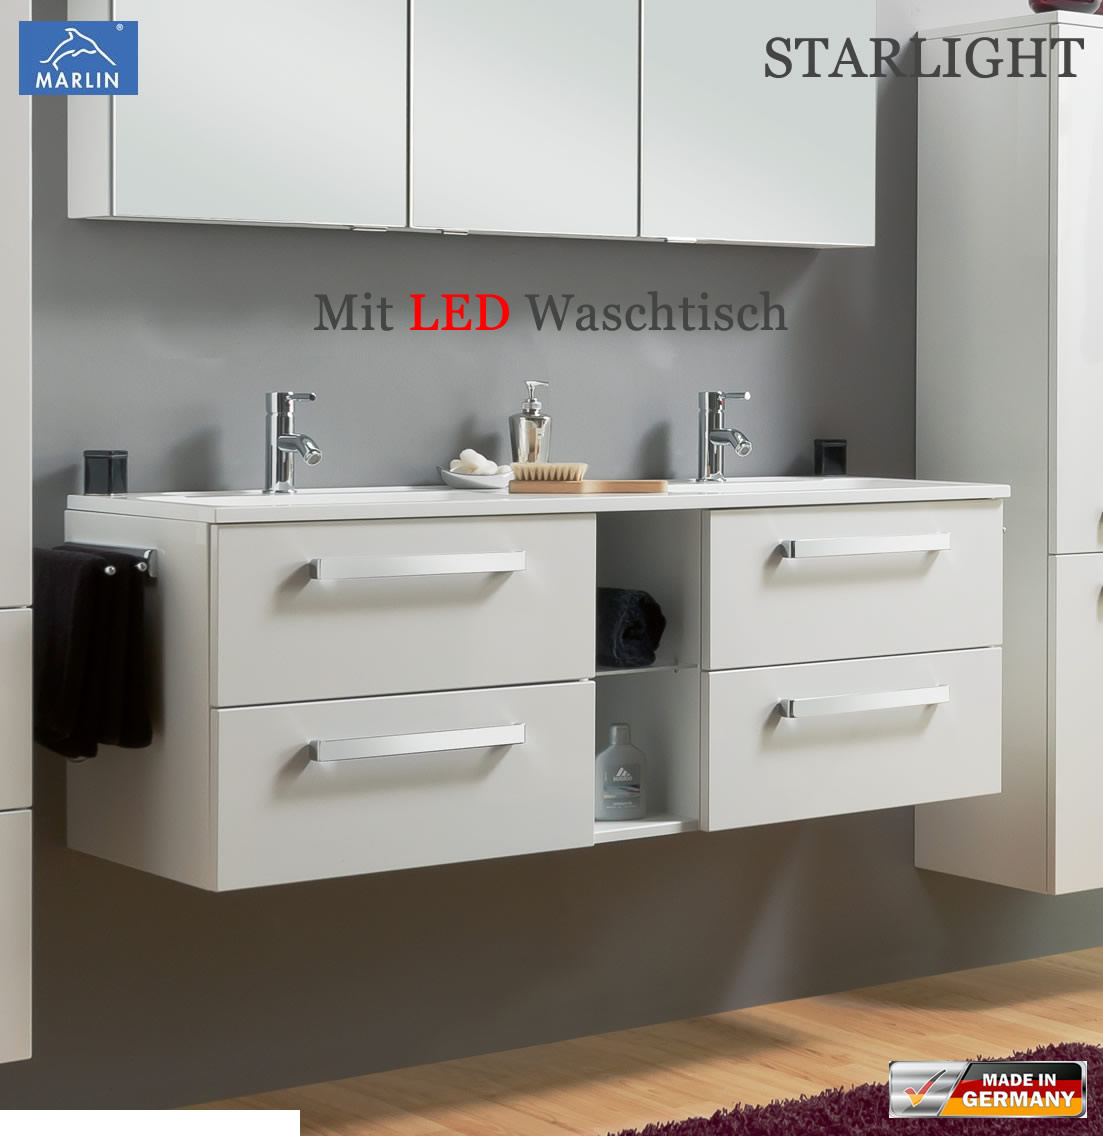 Marlin starlight led waschtischunterschrank set 140 cm for Waschtischunterschrank 140